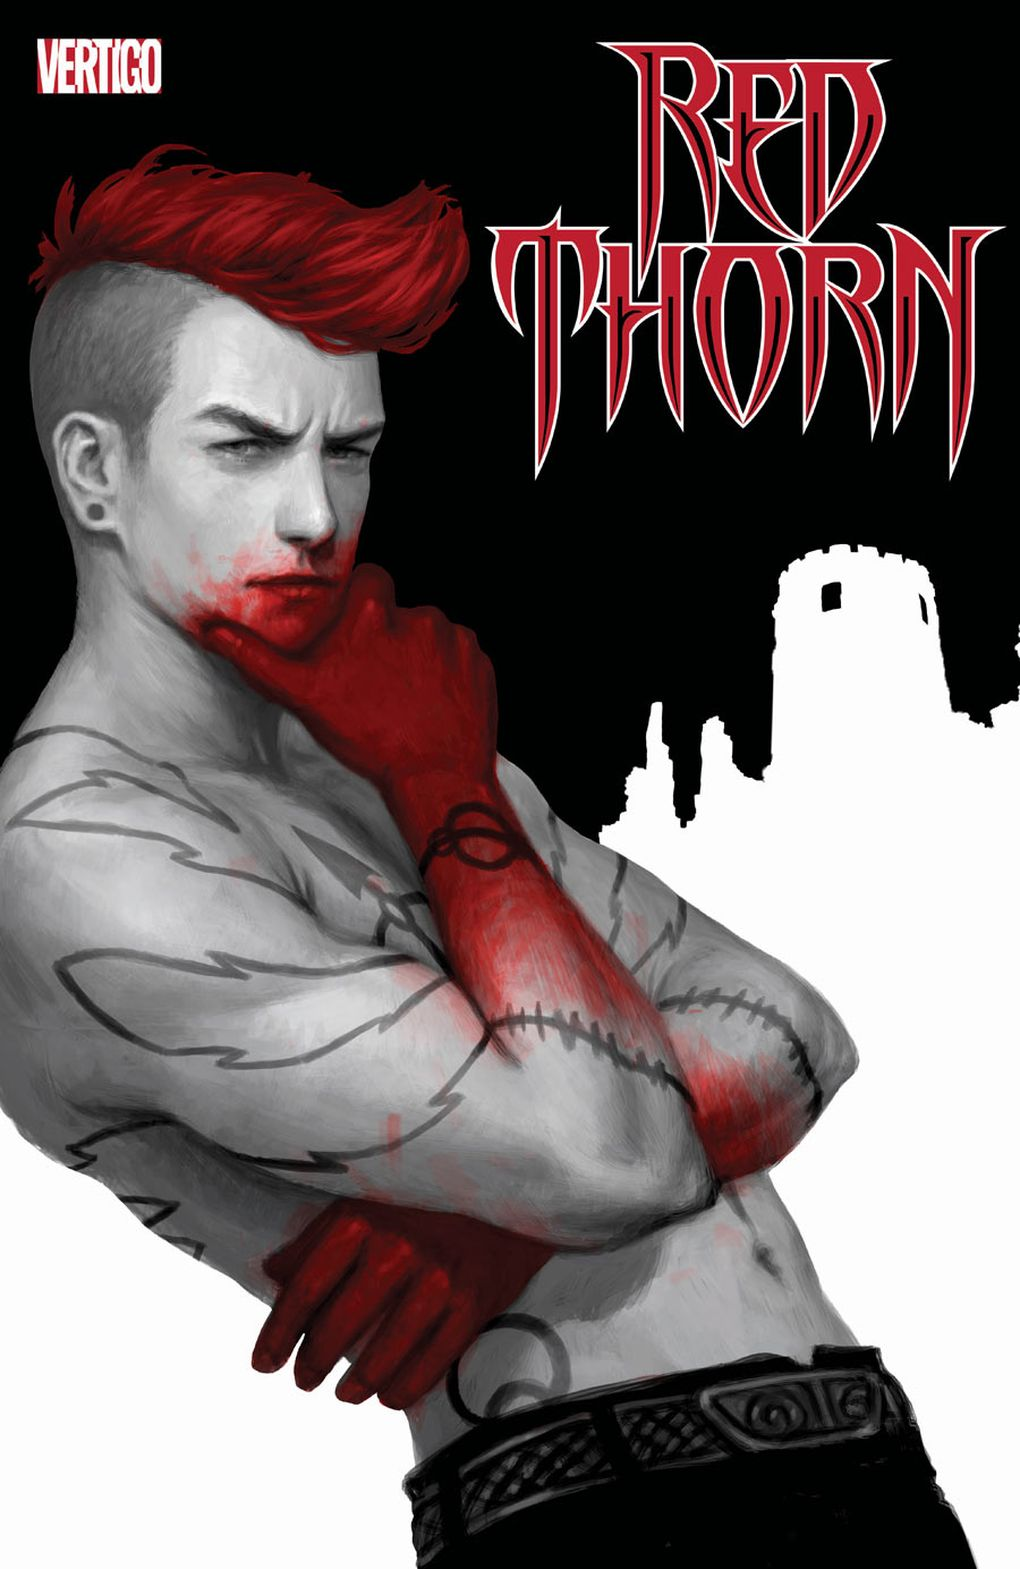 Red Thorn #1, image via Vertigo